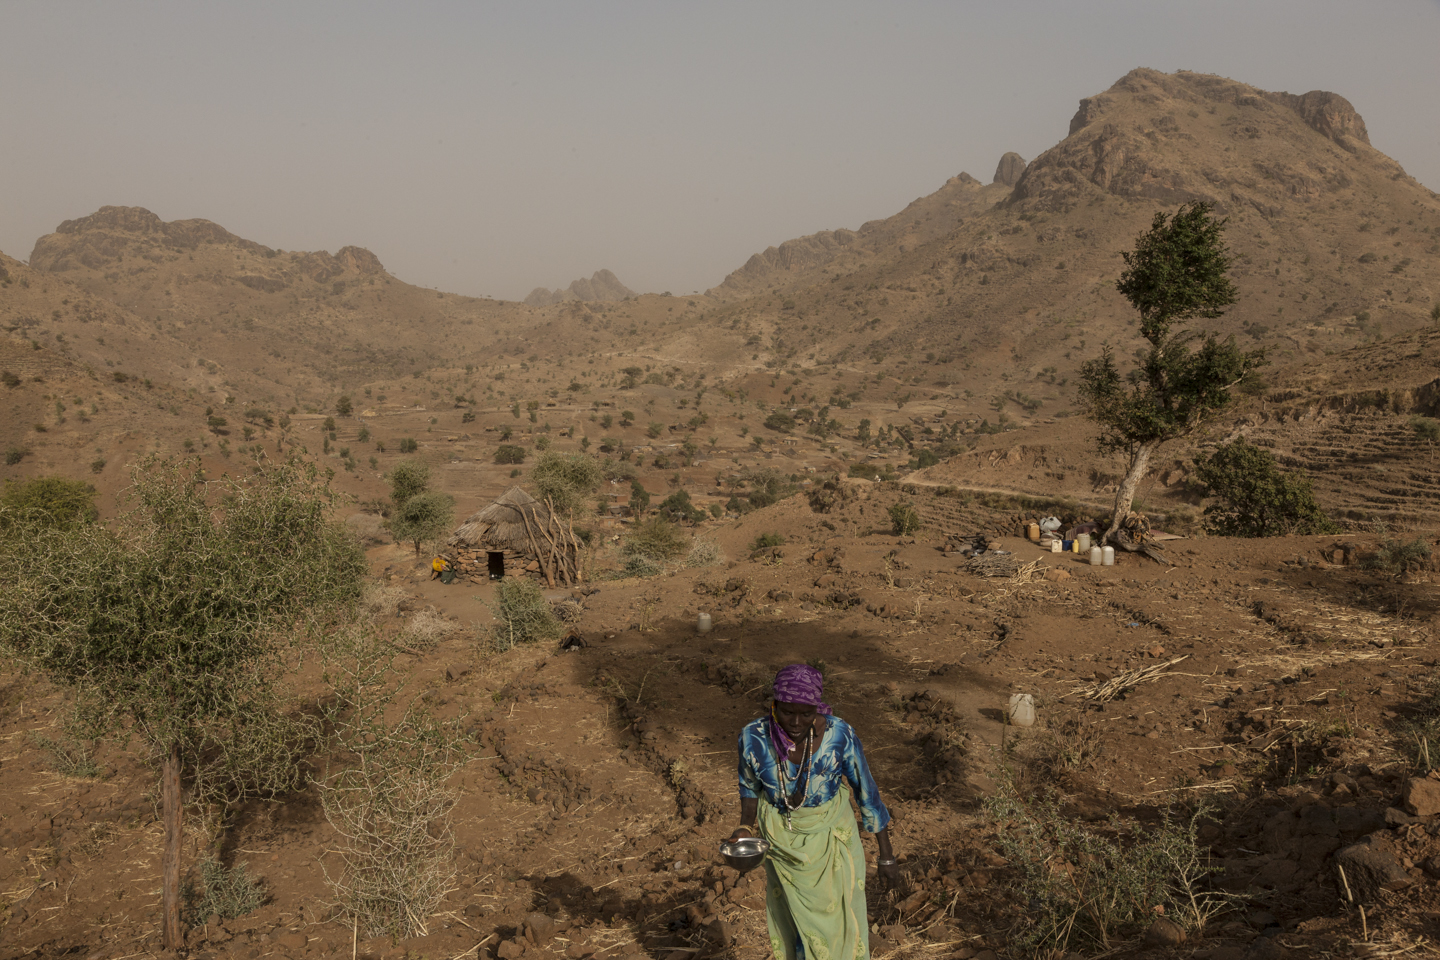 After fleeing a ground attack on the town of Golo, women and their children live under tress on the side of a mountain outside of Kone in Central Darfur, Sudan, February 28, 2015.